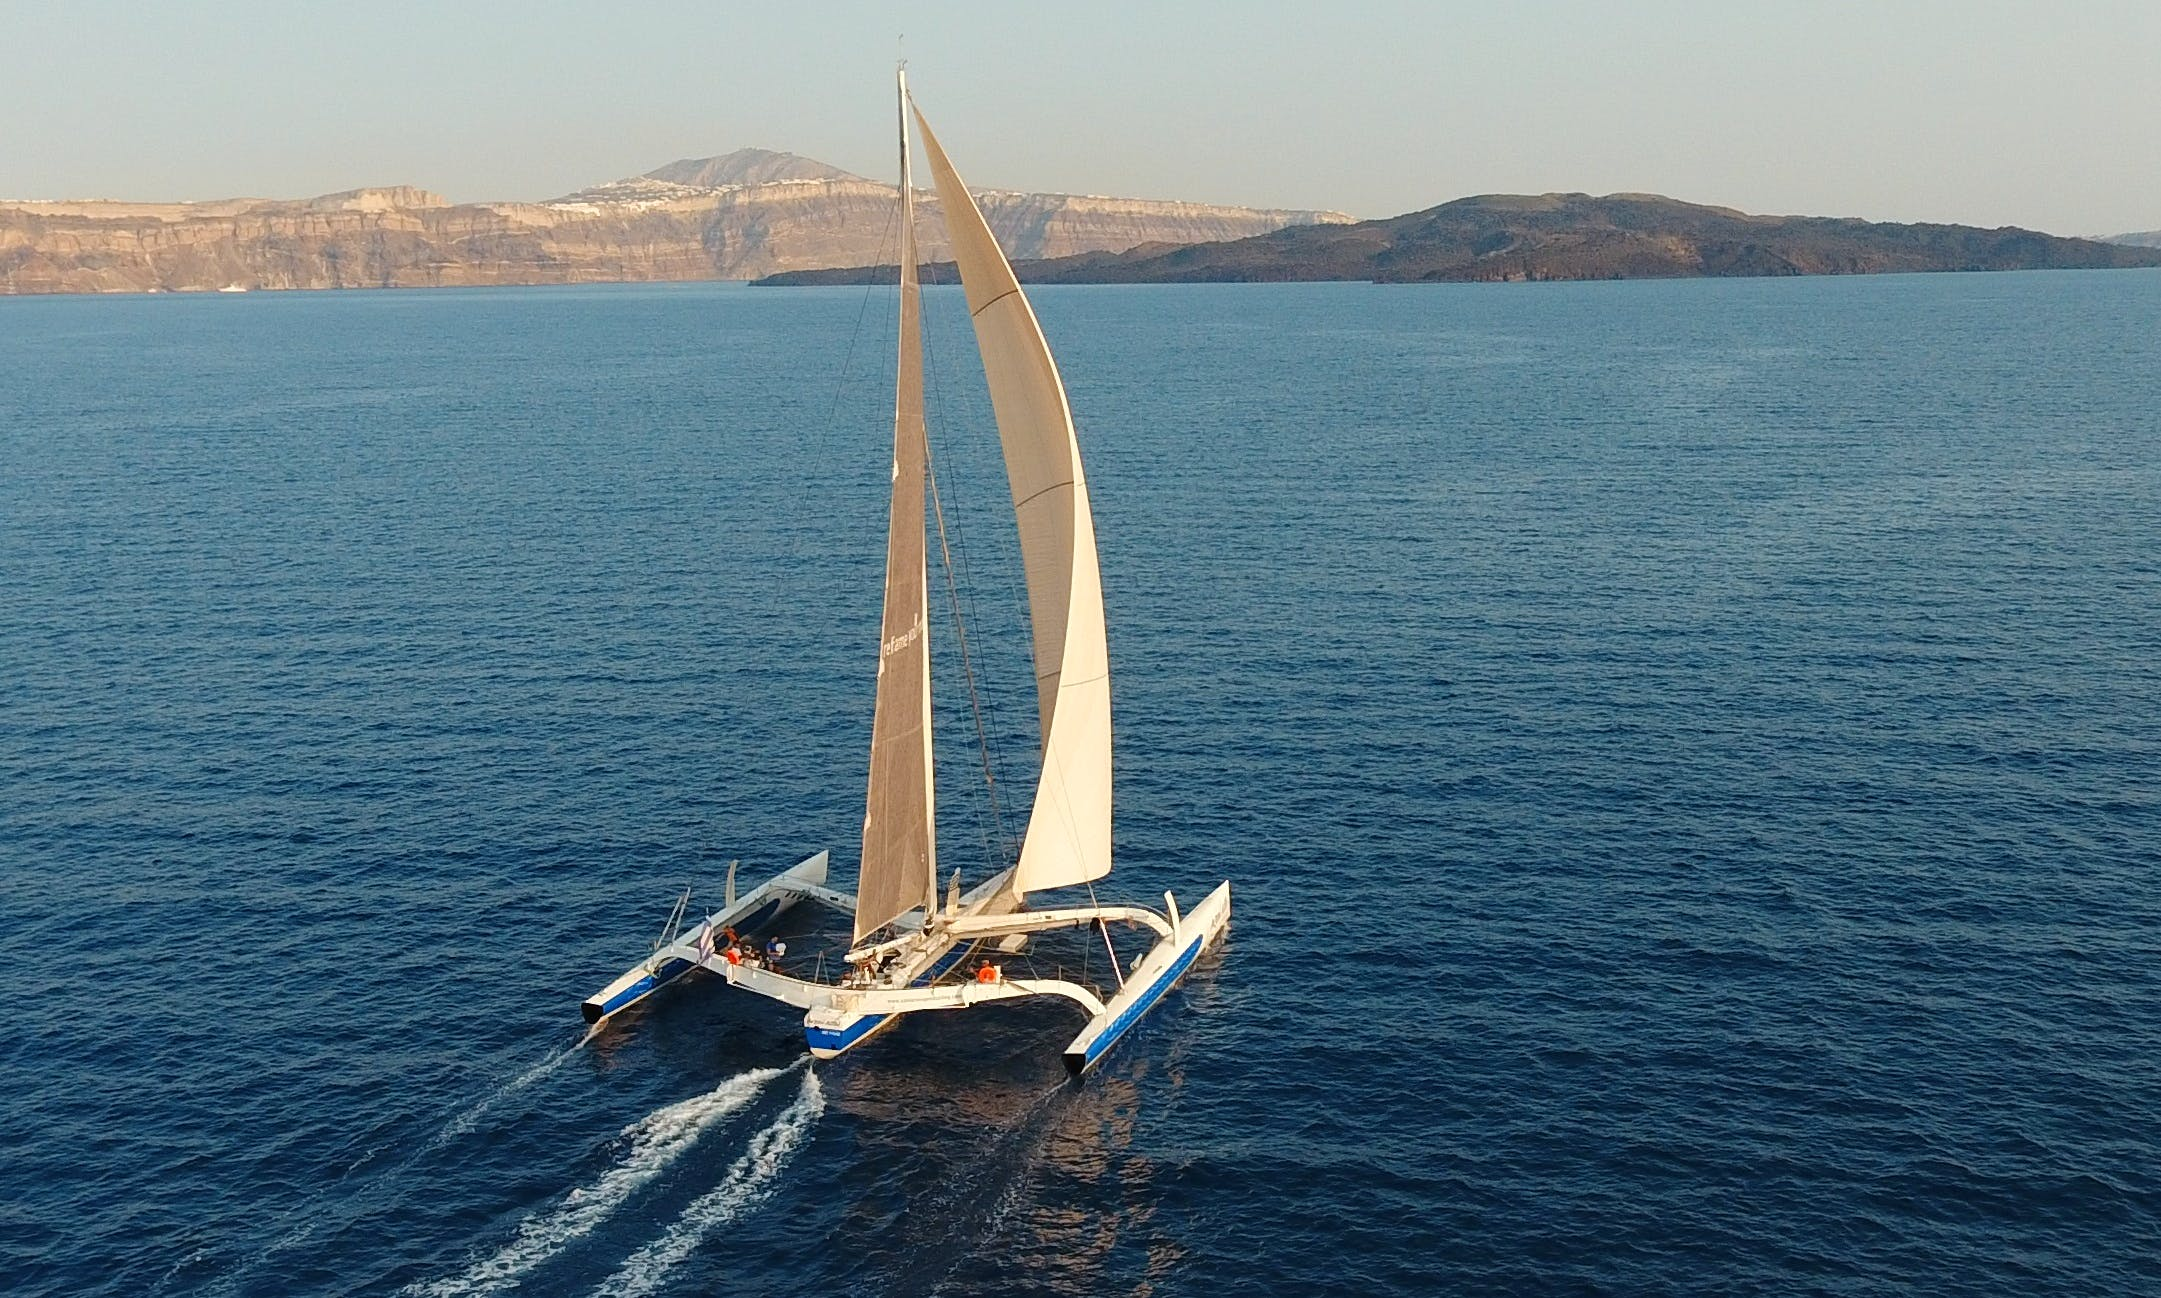 Orma60 Sailing Trimaran Rental in Vlichada